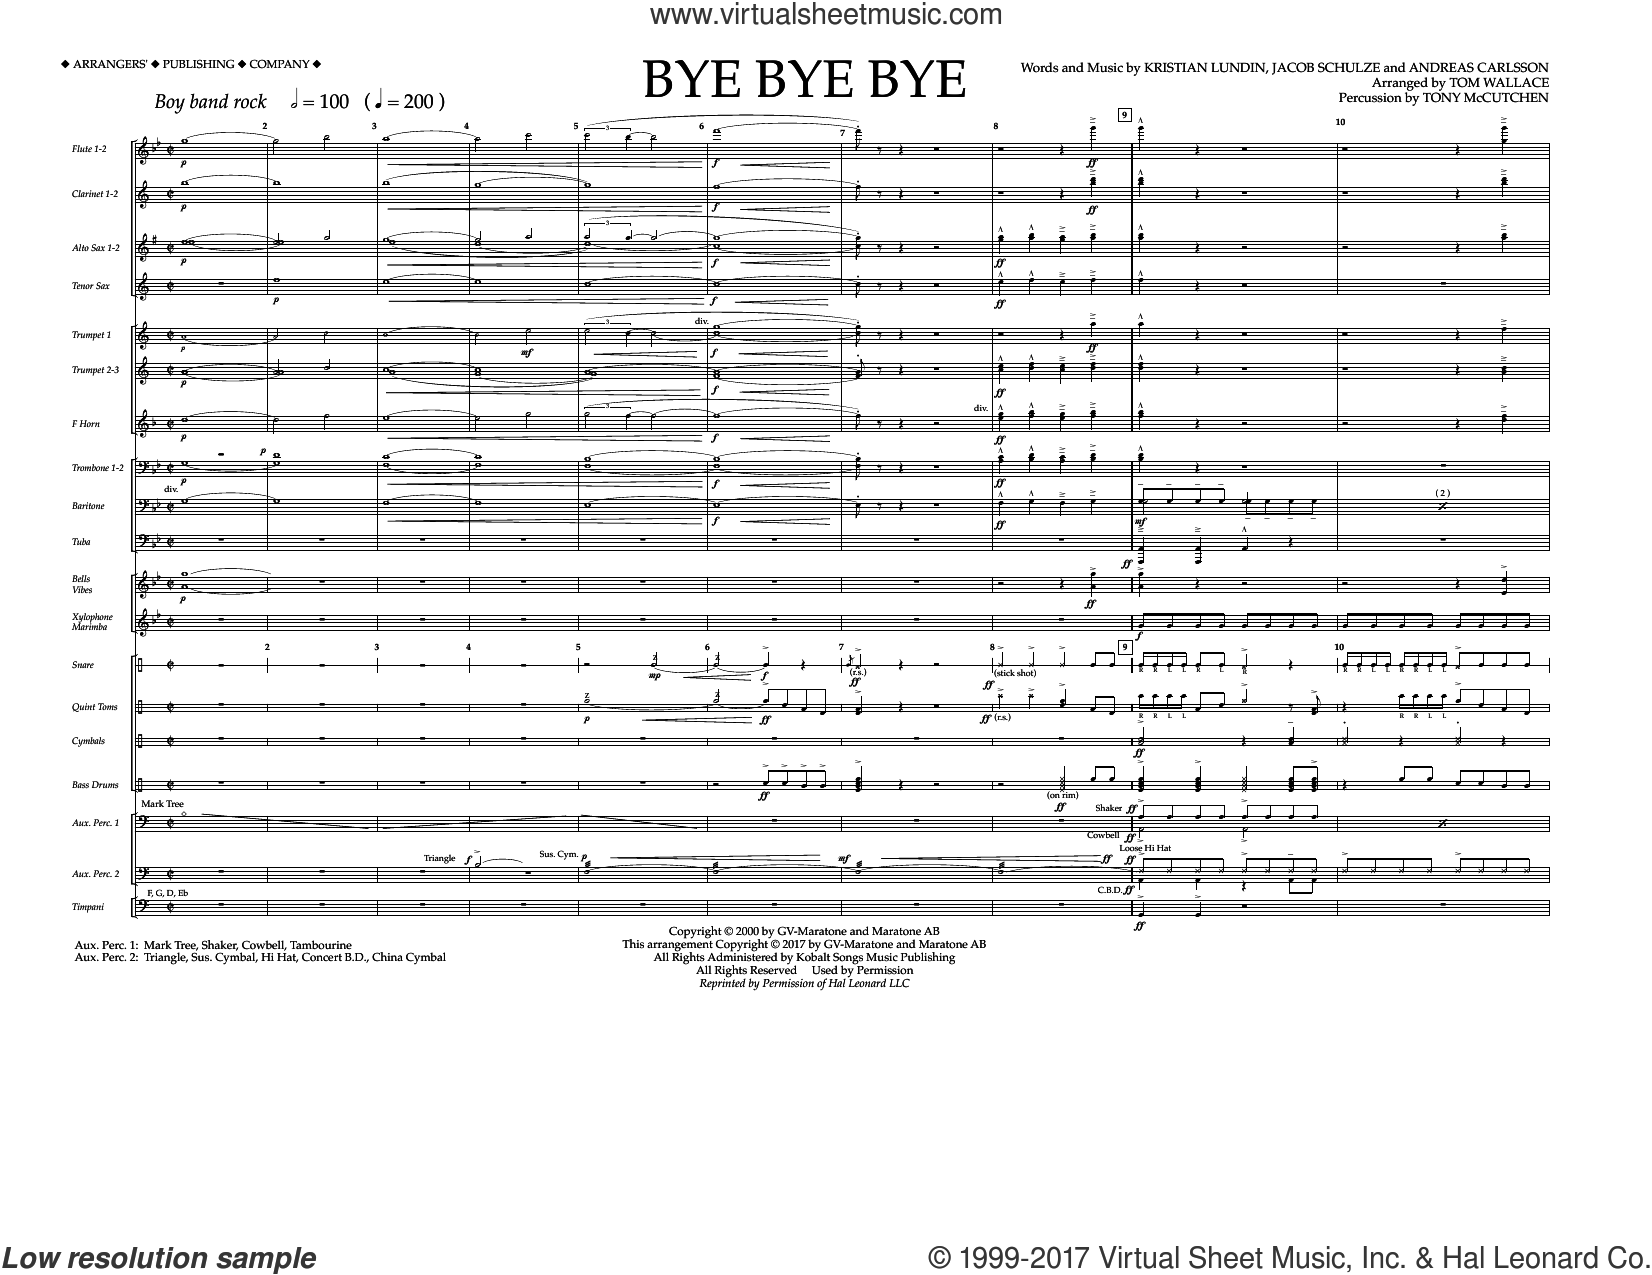 Bye Bye Bye (COMPLETE) sheet music for marching band by Tom Wallace, Andreas Carlsson, Jake Carlsson, Kristian Lundin and N Sync, intermediate. Score Image Preview.